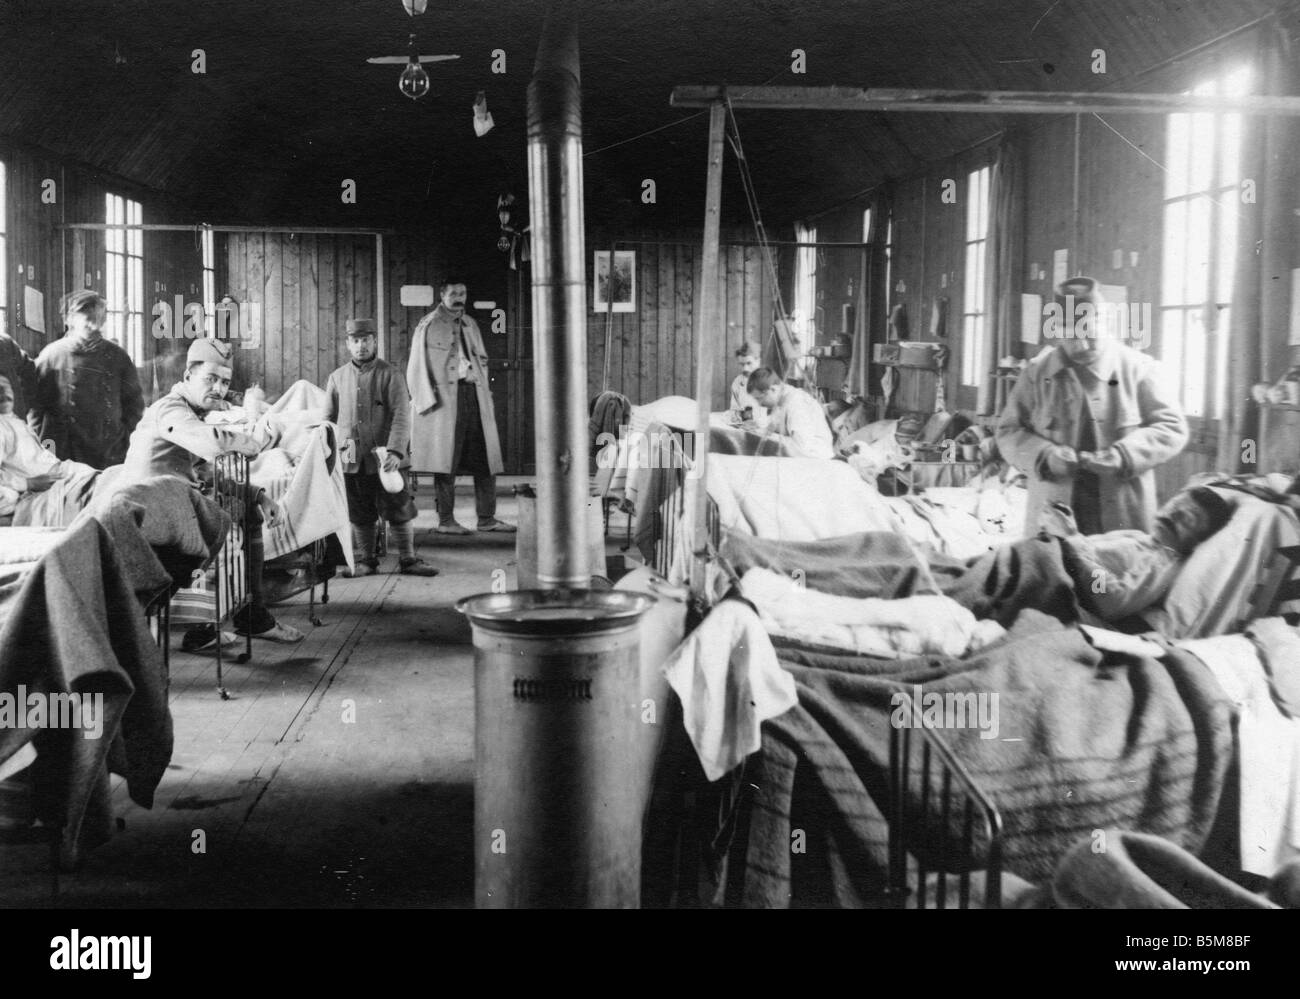 2 g55 f1 1915 8 fatally wounded in french field hospital history wwi stock photo 20729283 alamy. Black Bedroom Furniture Sets. Home Design Ideas